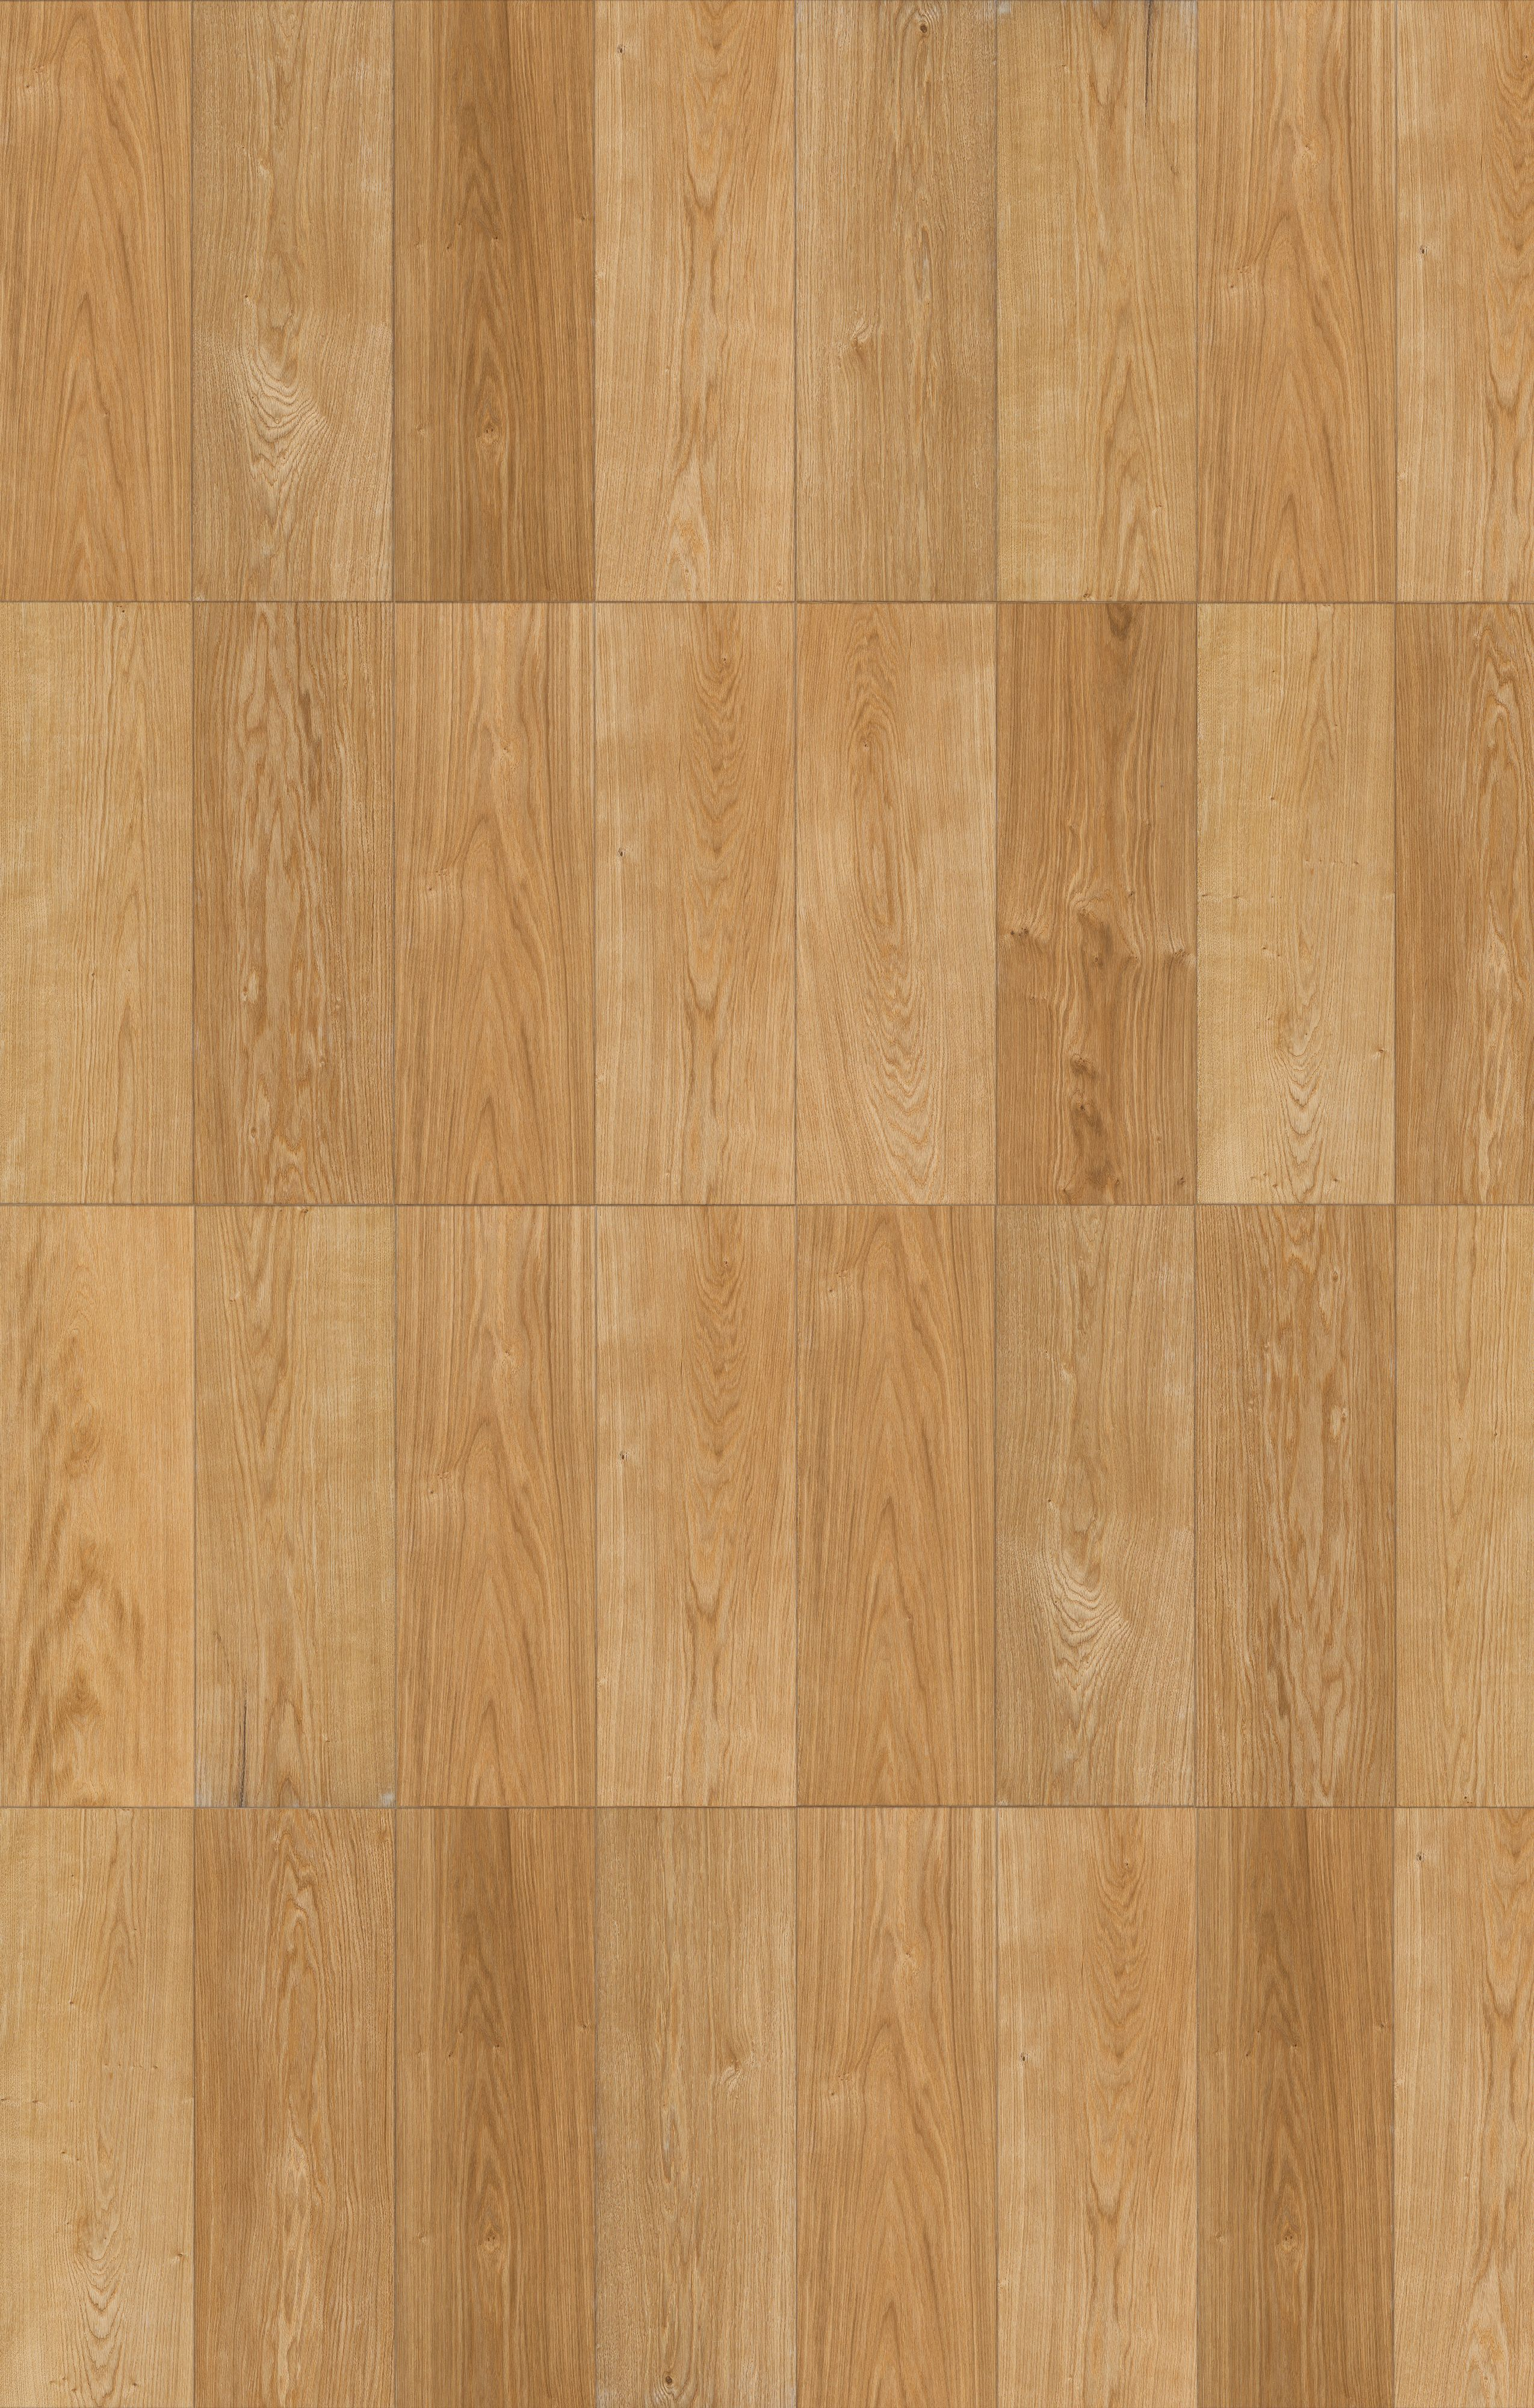 Kahrs Wood Flooring Parquet Interior Design Www Kahrs Com Wood Floor Texture Ceramic Texture Wood Texture